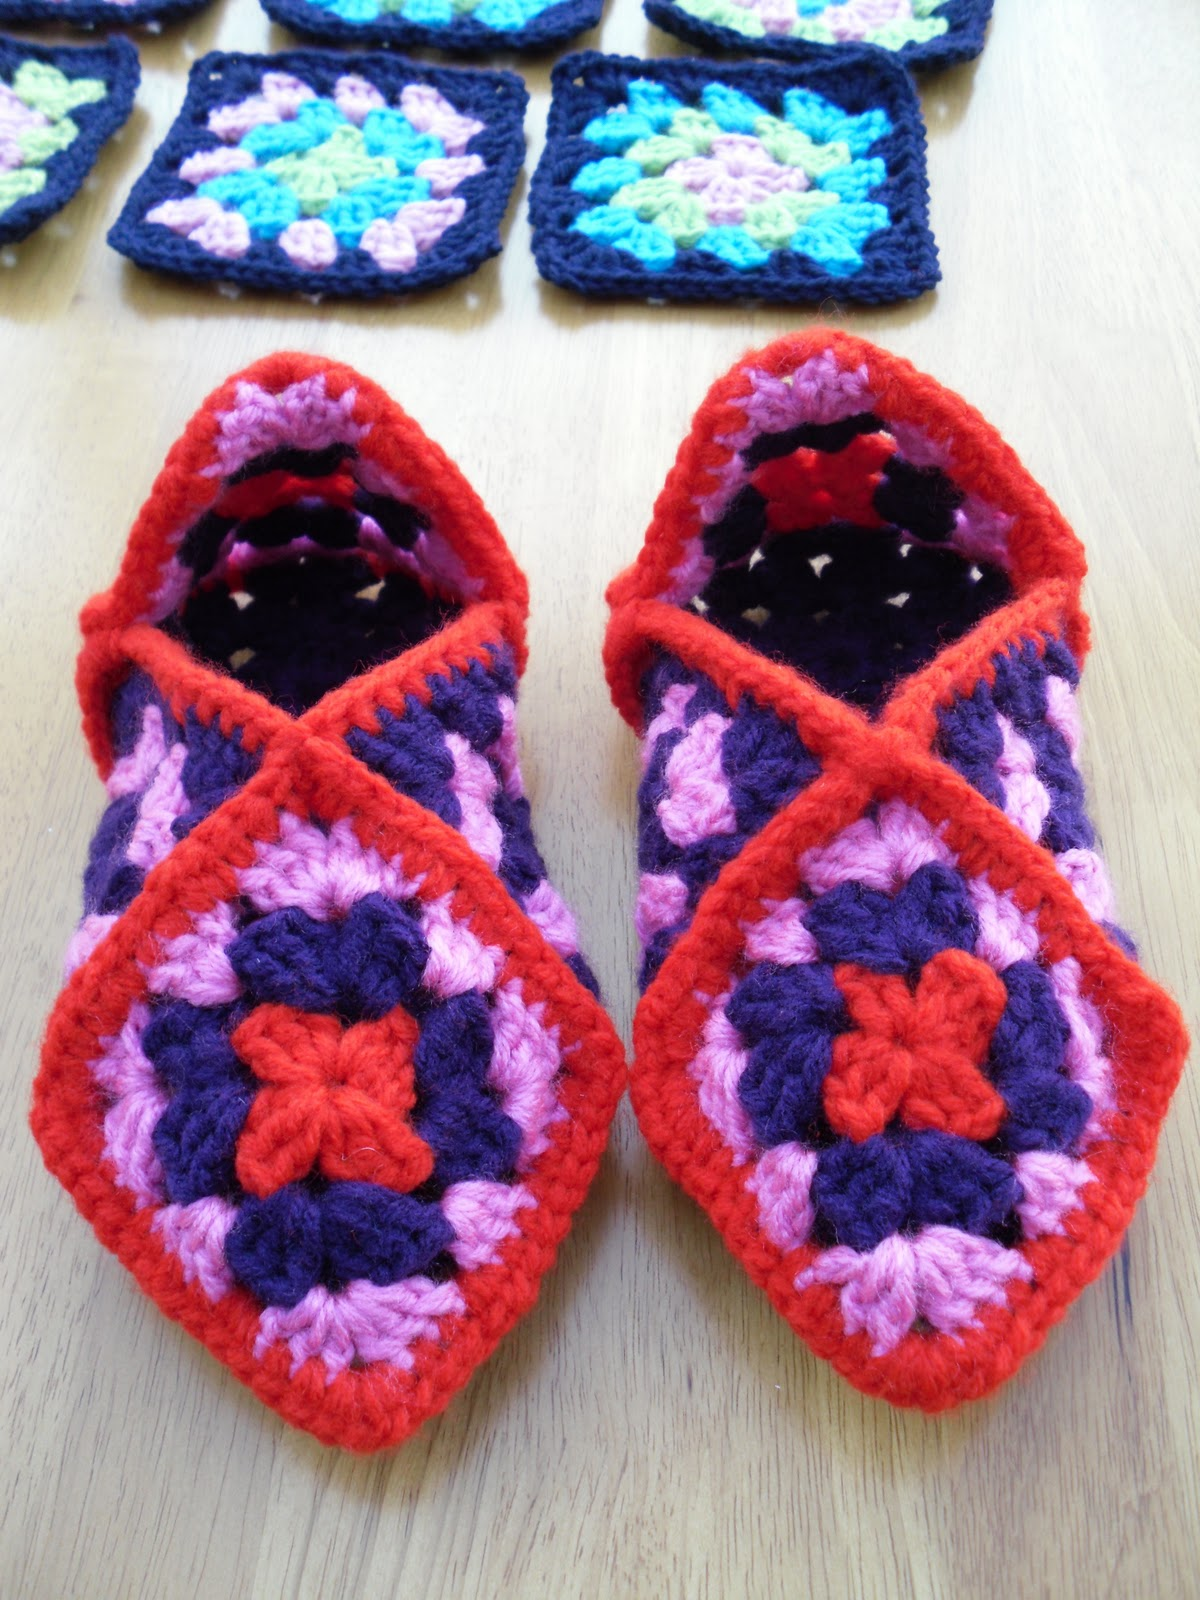 Crochet Granny Square Slipper Pattern : The Craft Attic: Crochet Granny Square Slippers